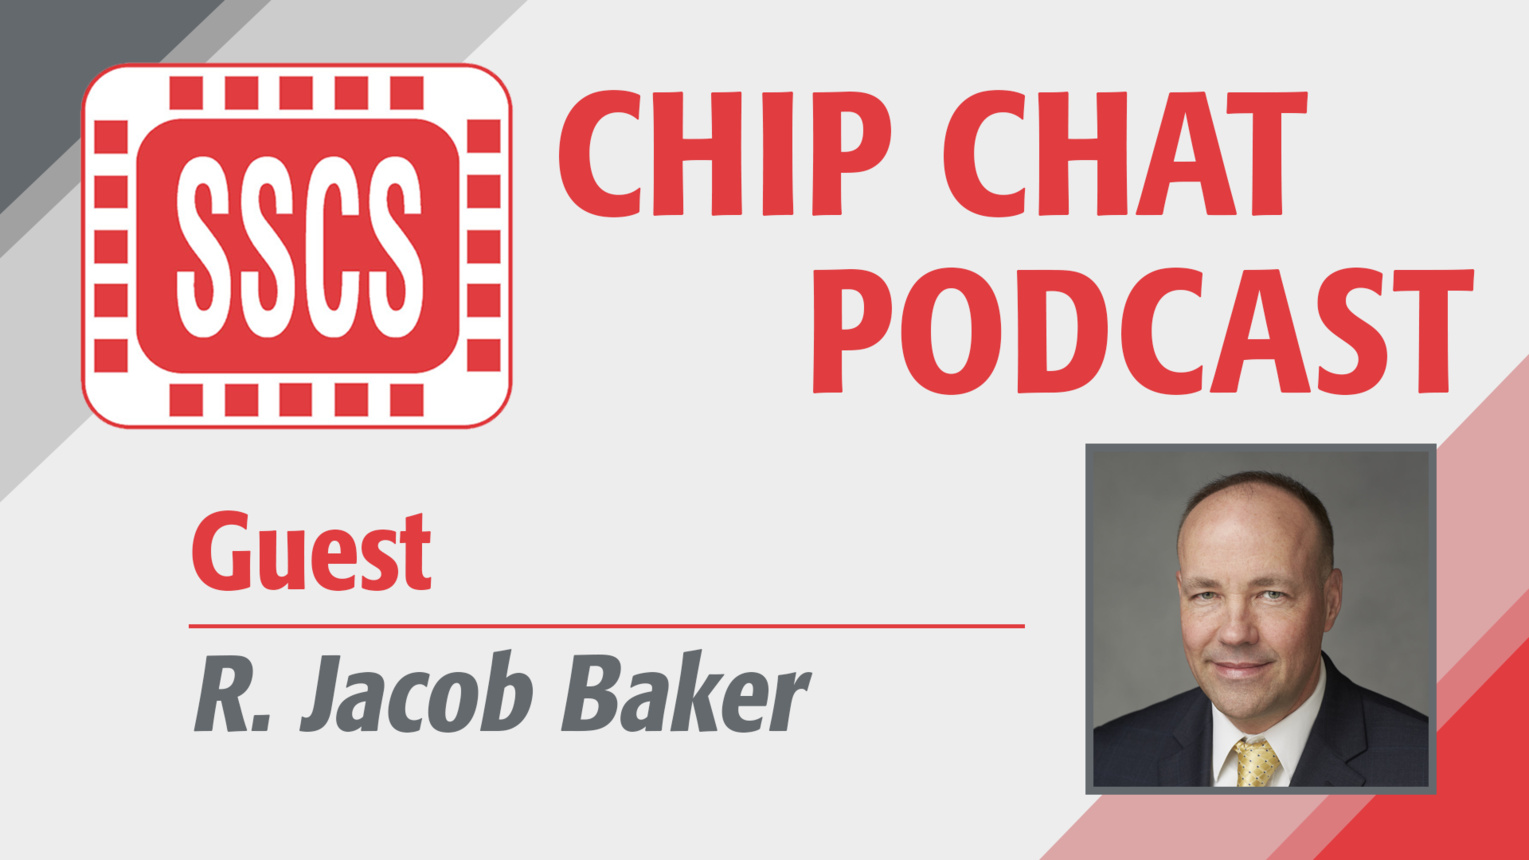 R. Jacob Baker - SSCS Chip Chat Podcast, Episode 4